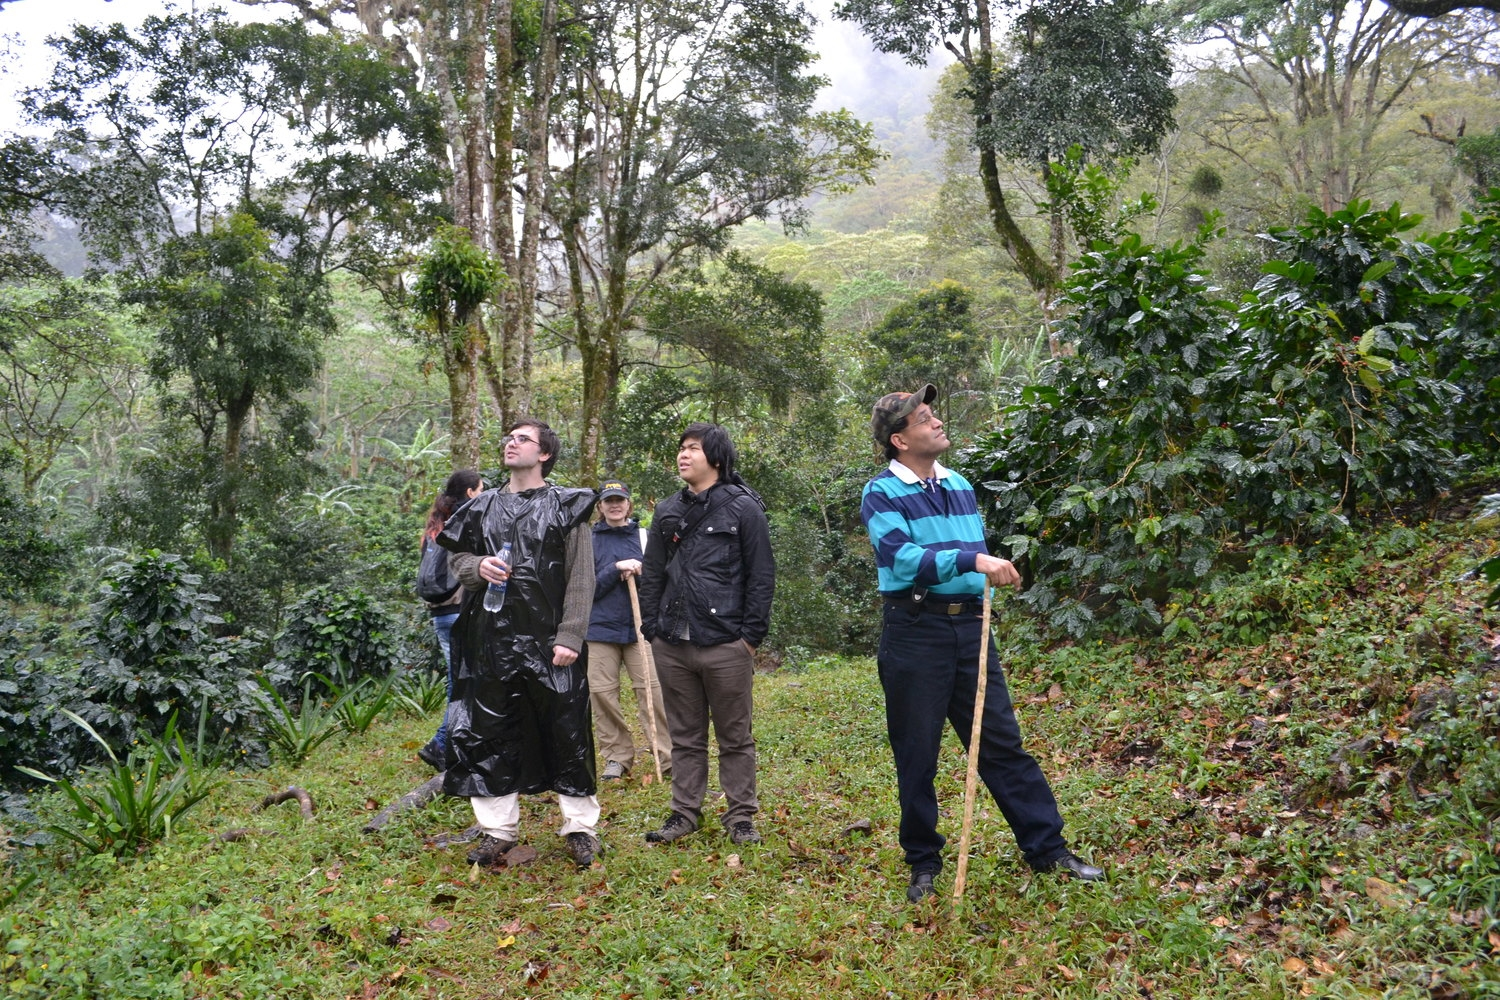 Hiking trip and tour to learn about the cloud forest of Santa Maria de Ostuma.